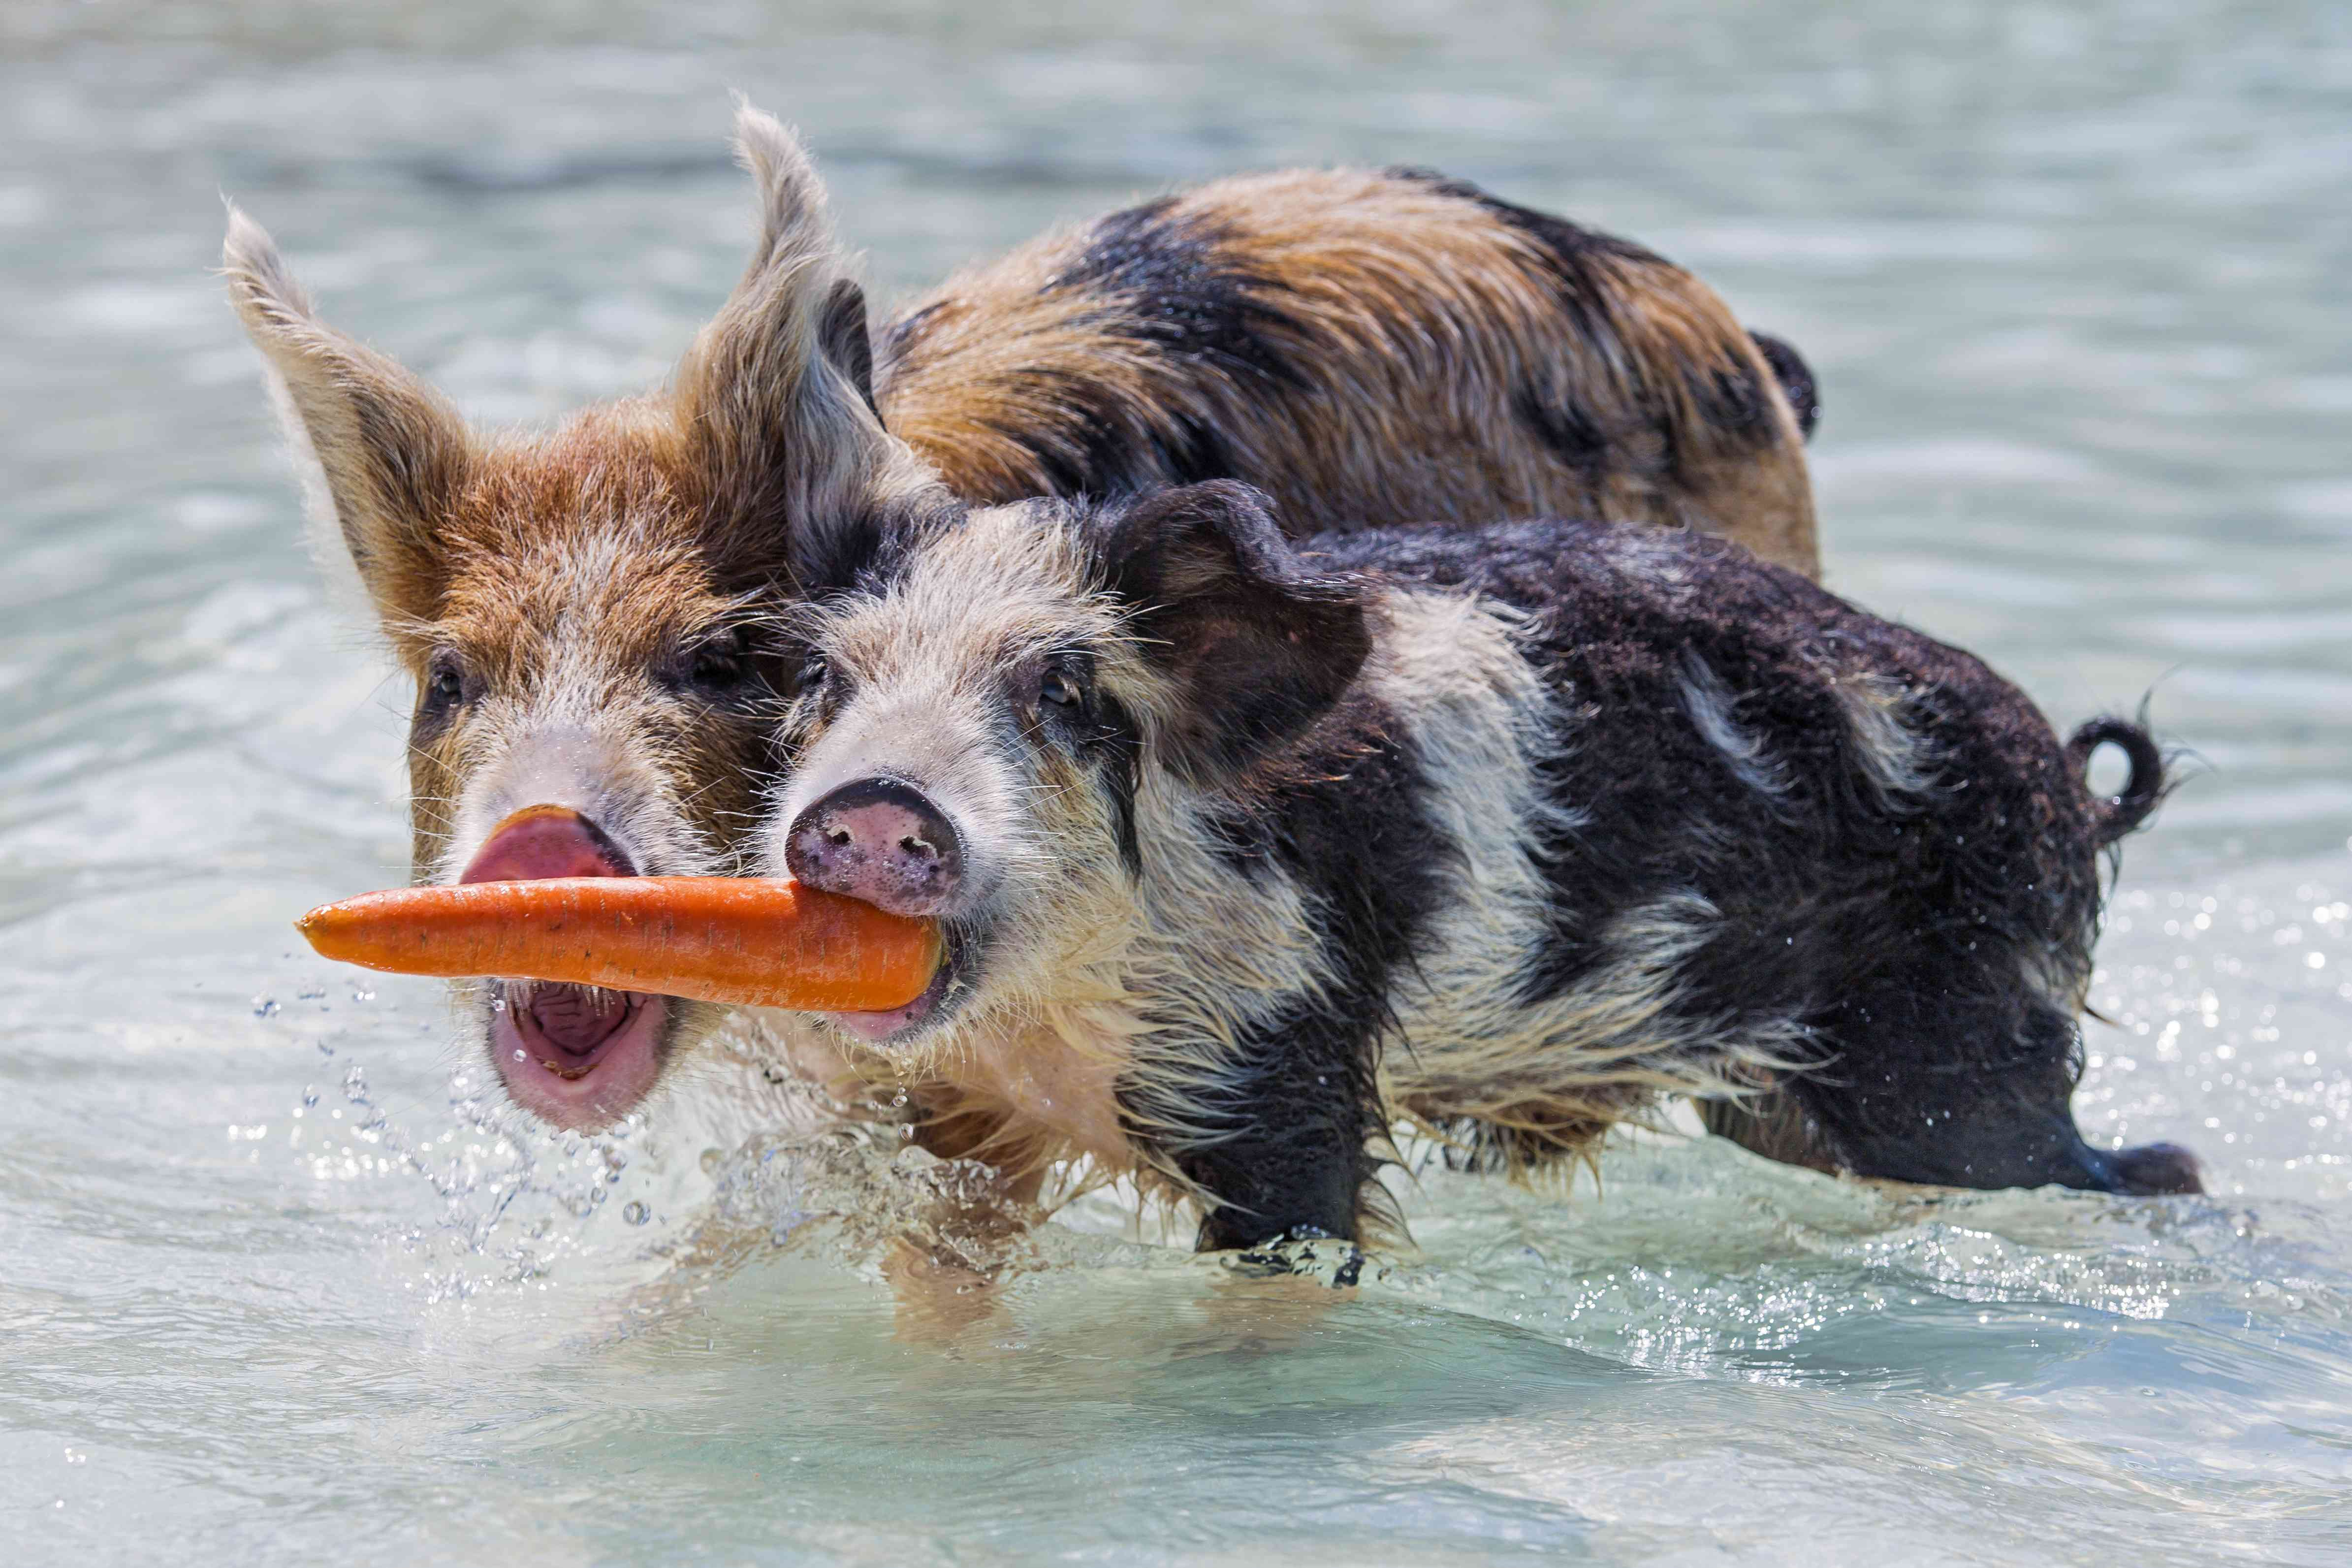 Pigs fighting over carrot